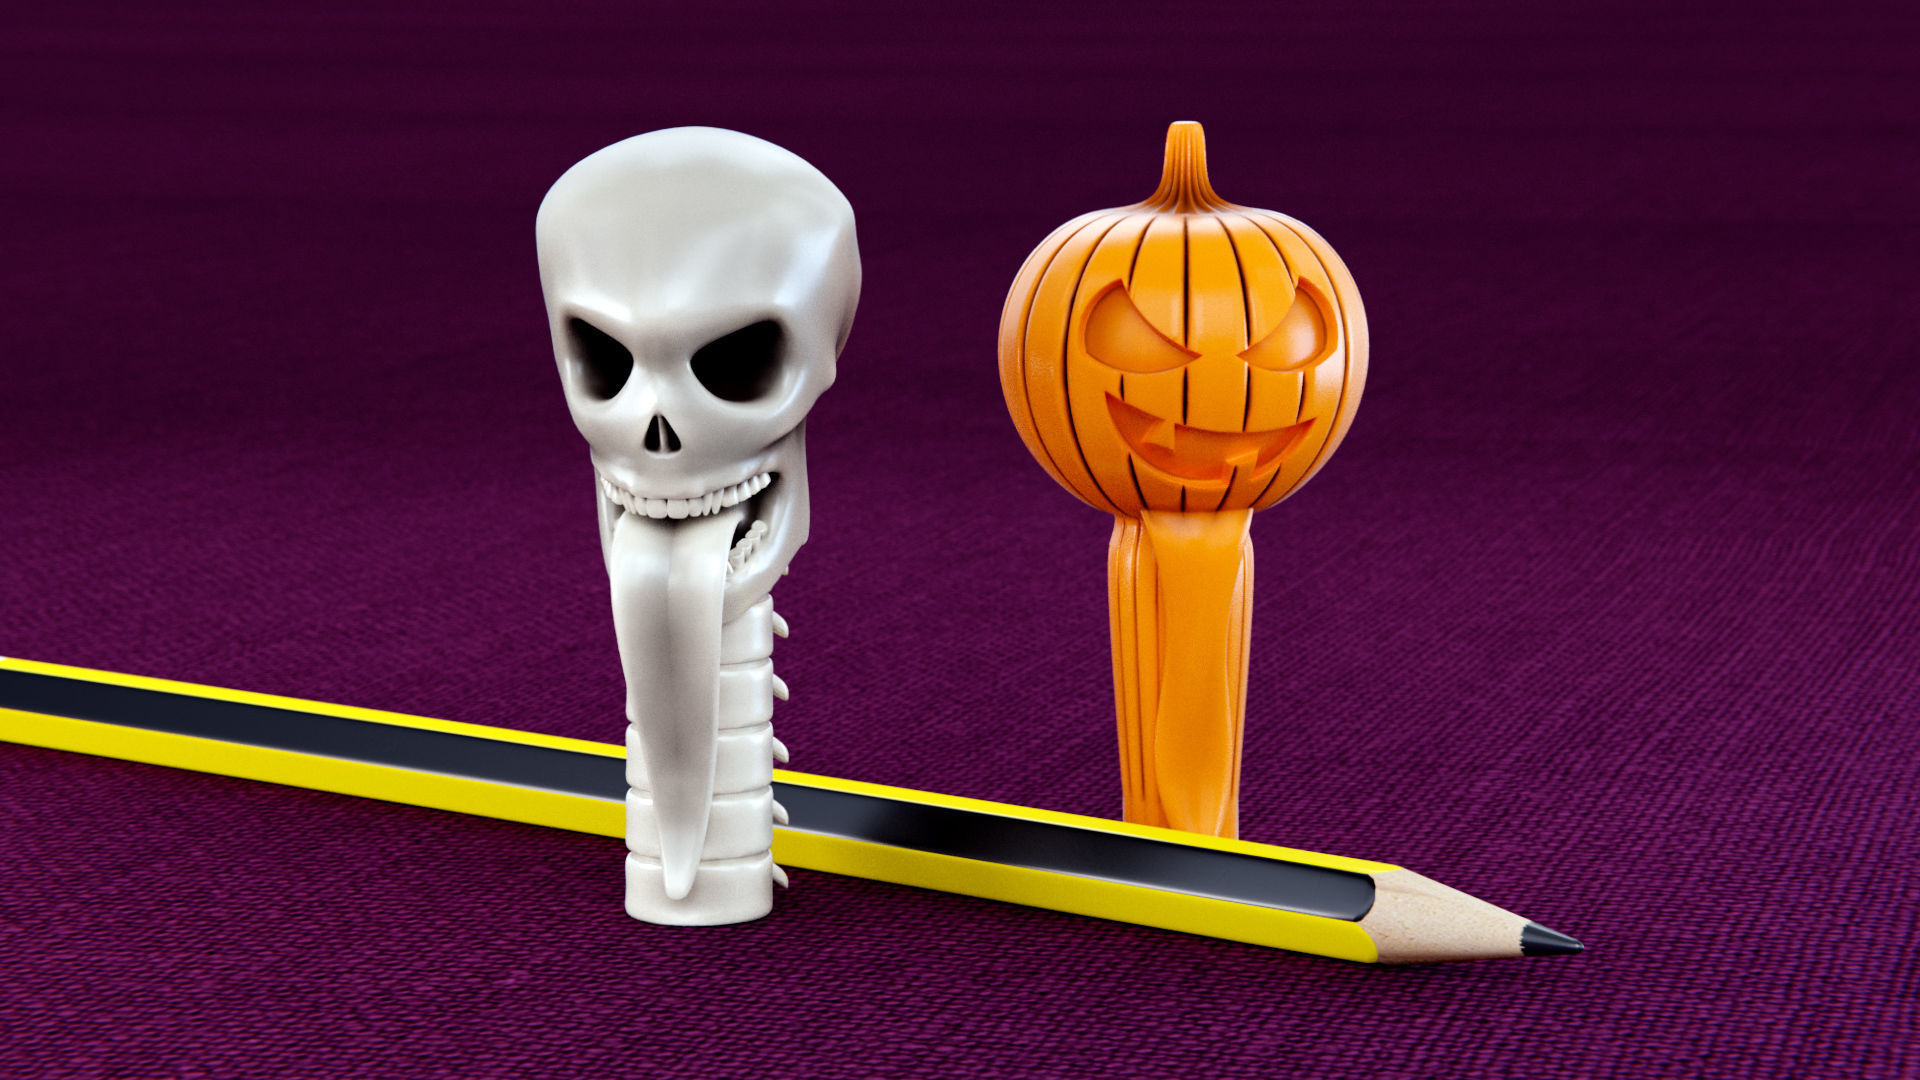 Skull and Pumpkin Pencil Caps